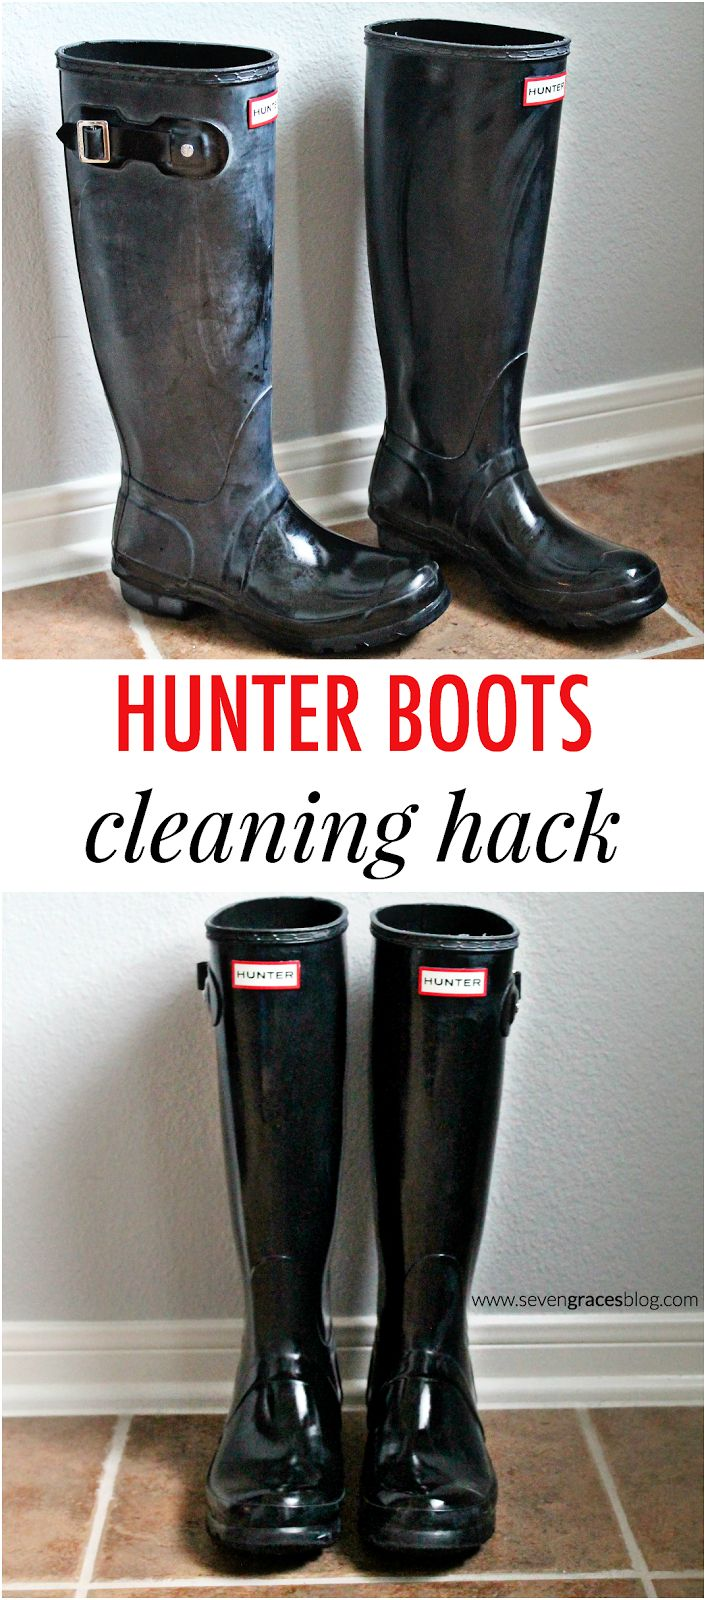 Seven Graces: Currently Confessing: Vol. 52...The One With the Hunter Boots Cleaning Hack